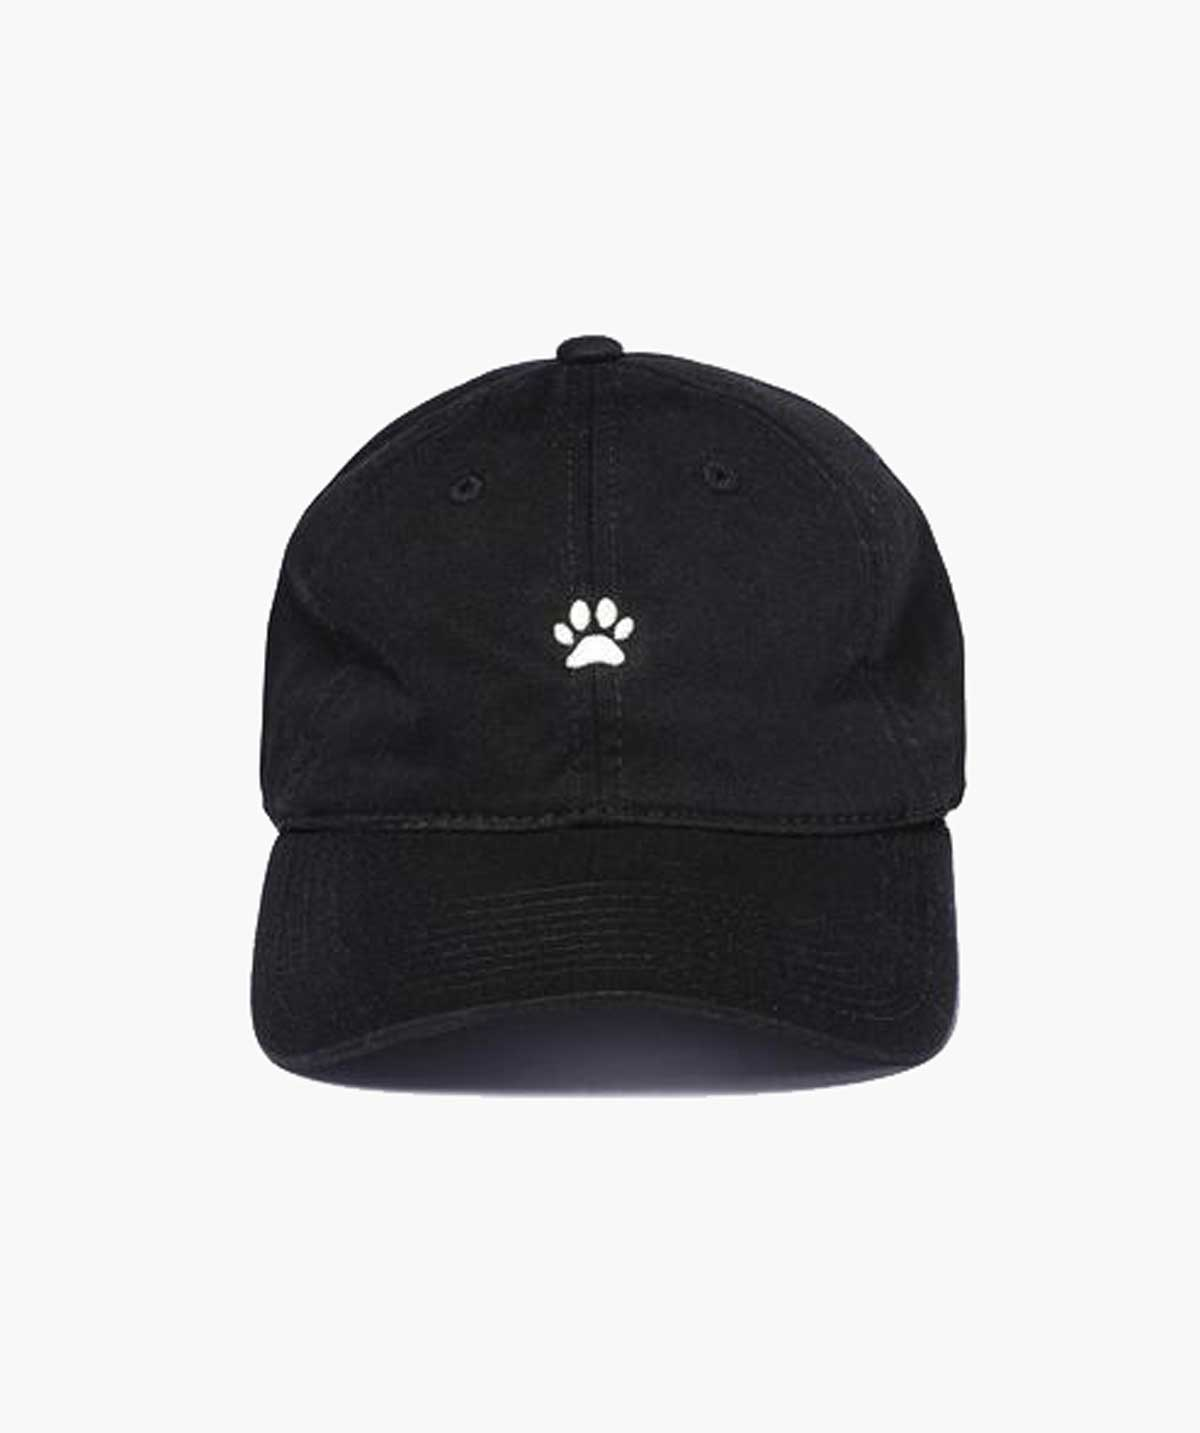 Dad Hat - Black/White - MOD